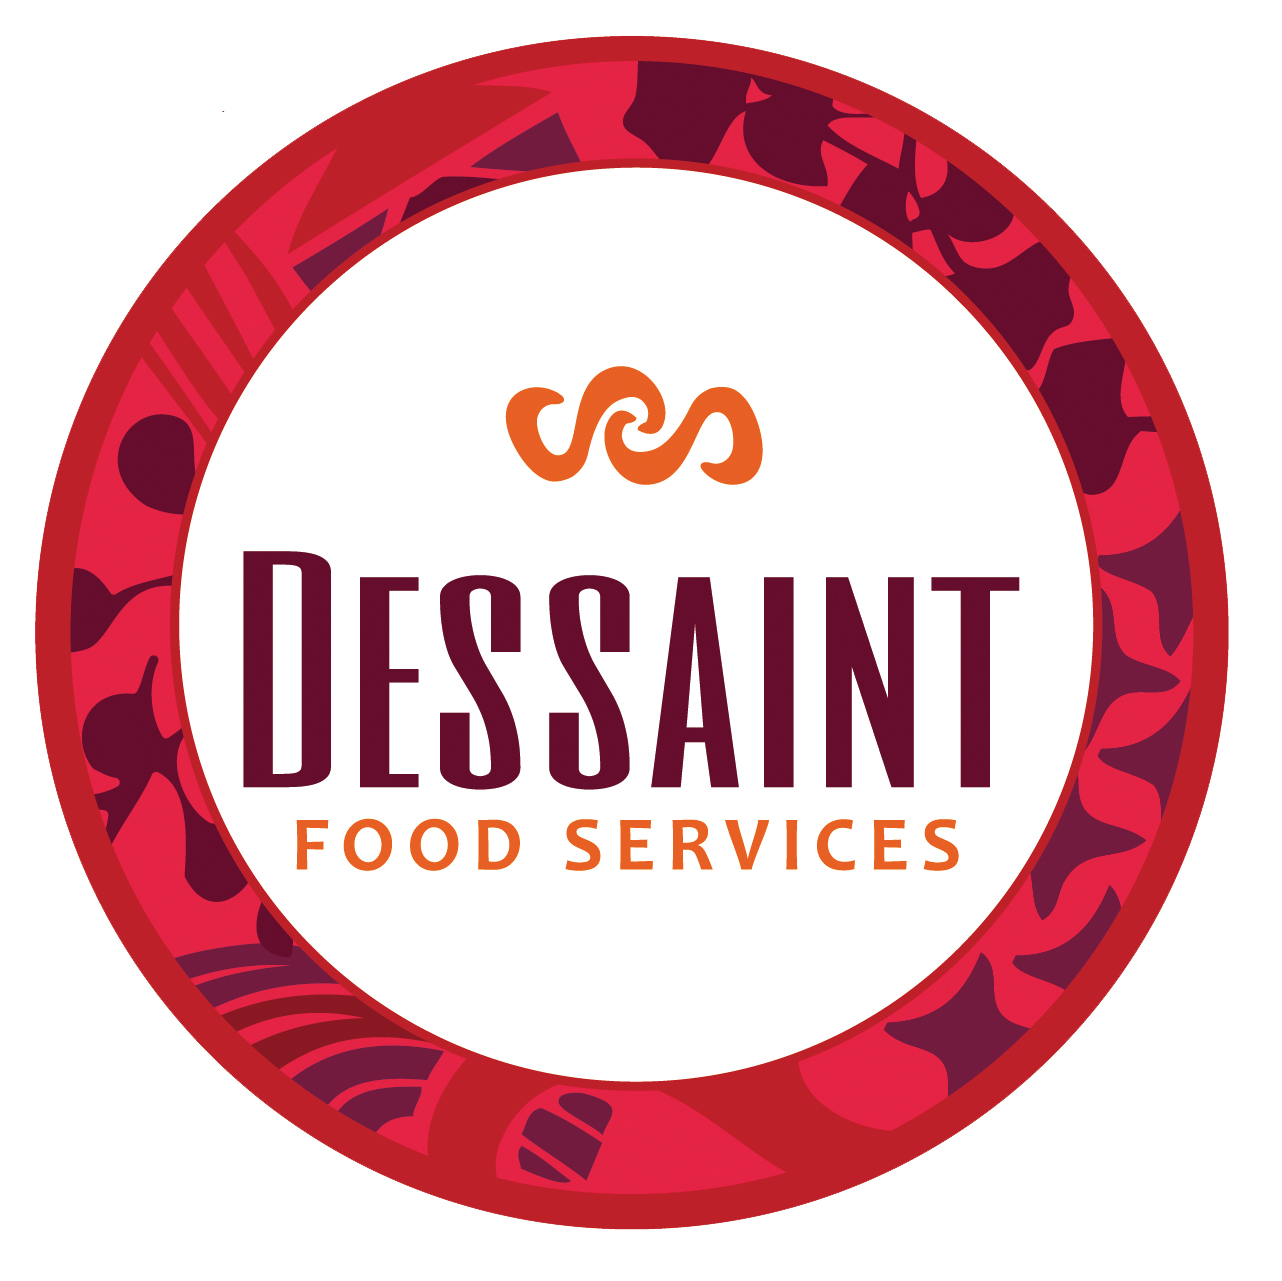 Dessaint Food Services